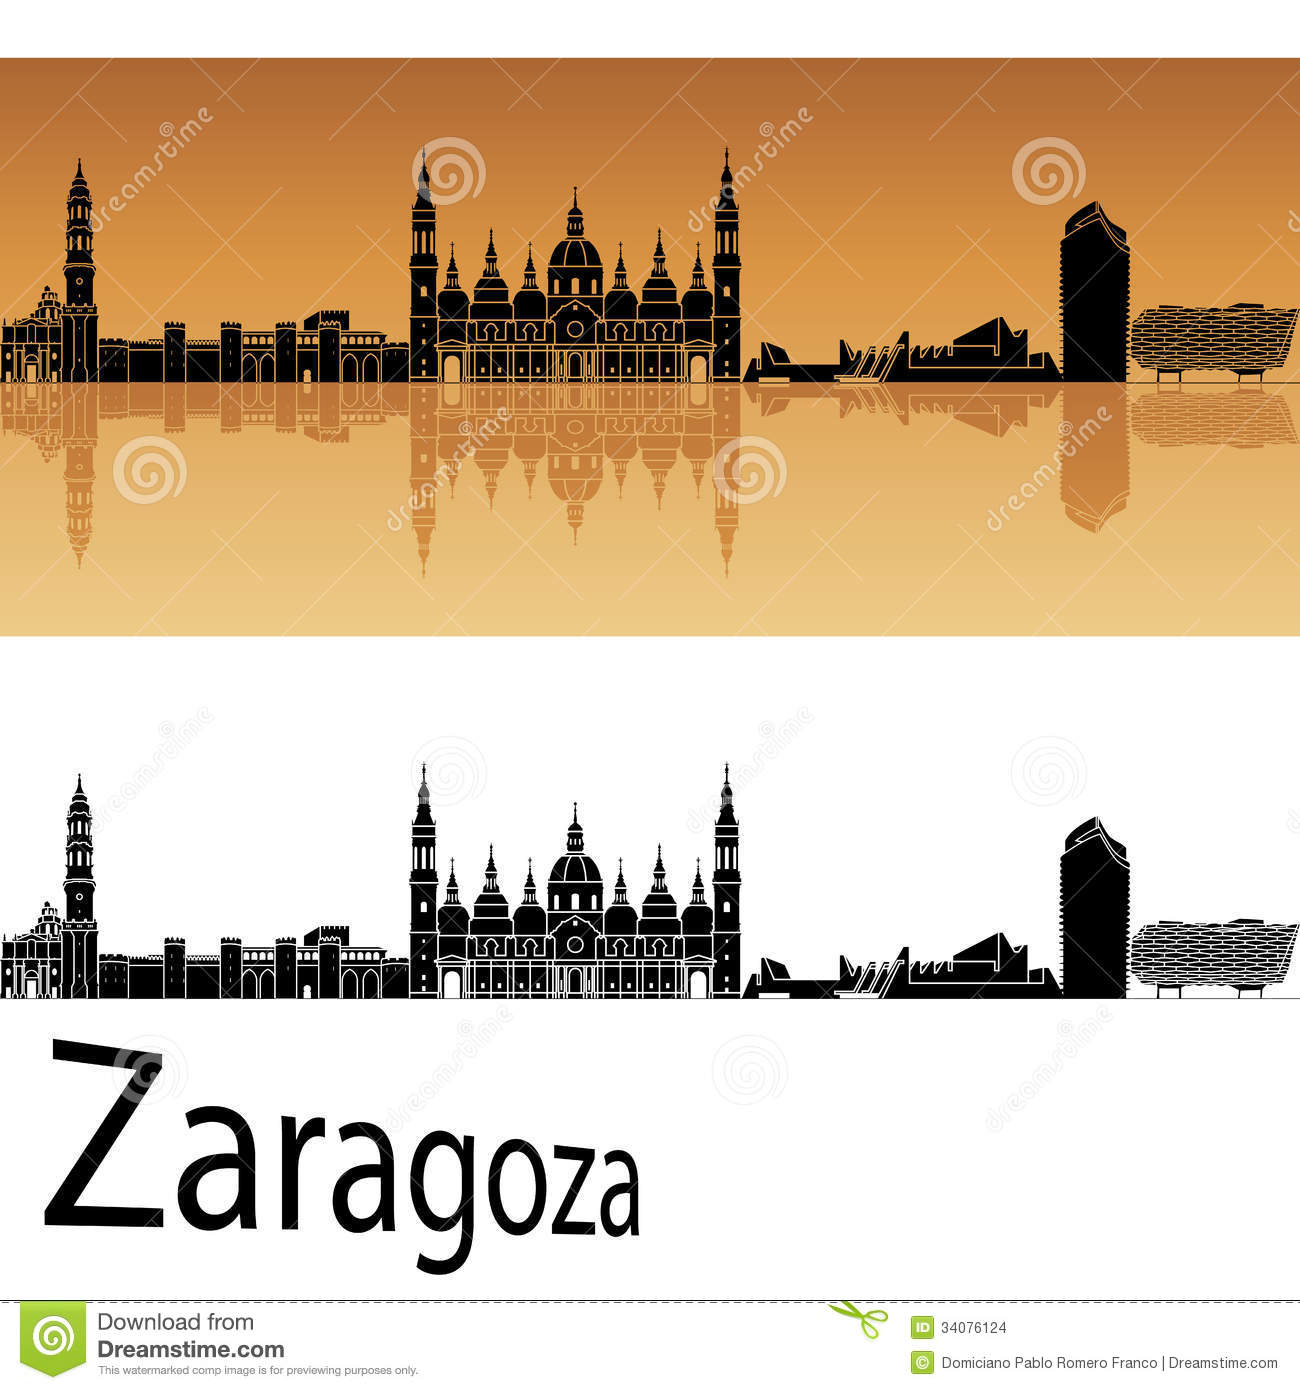 Zaragoza Stock Illustrations.